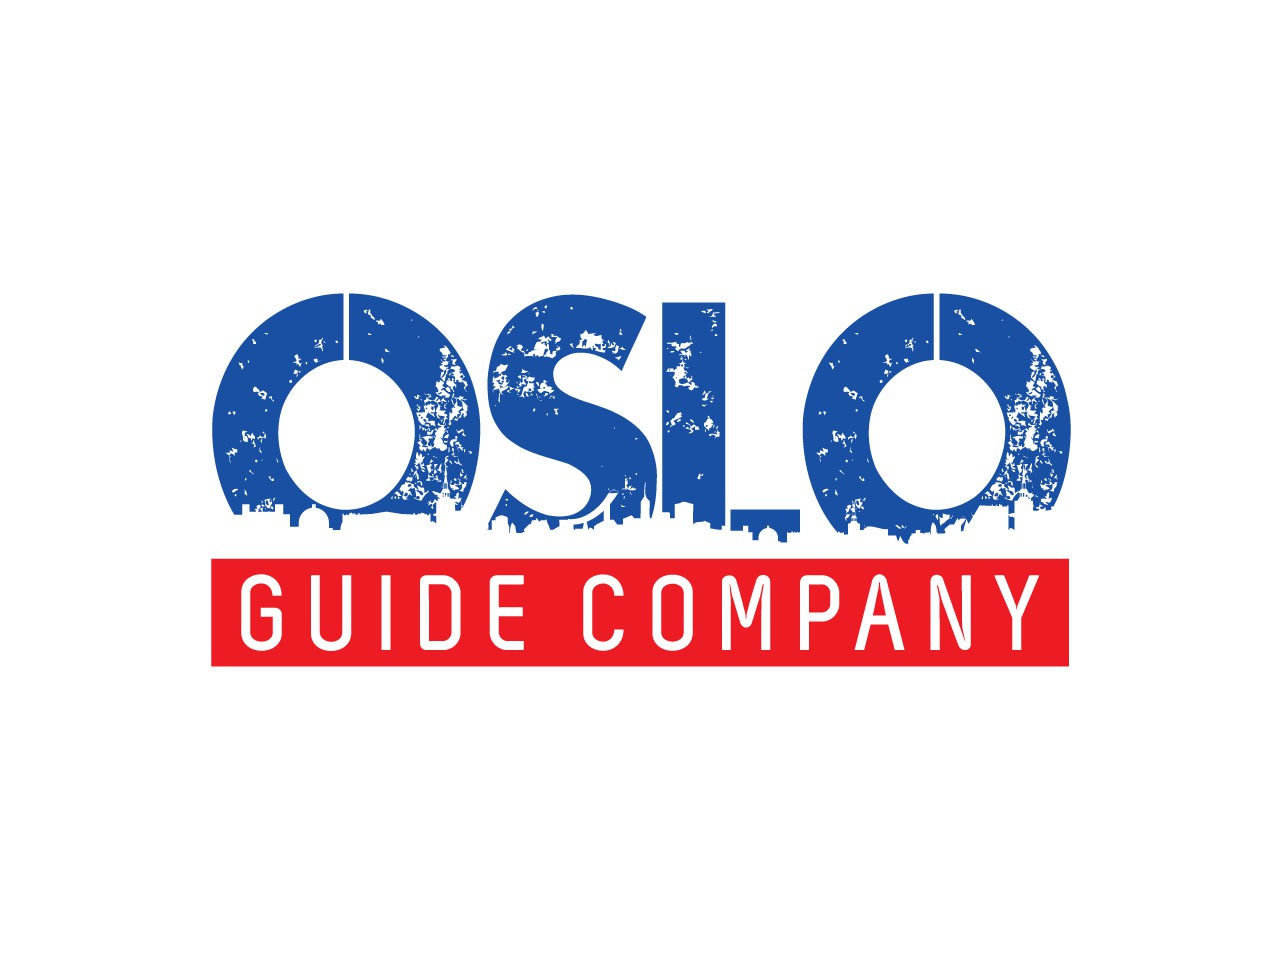 Help Oslo Guide Company with a new logo and business card